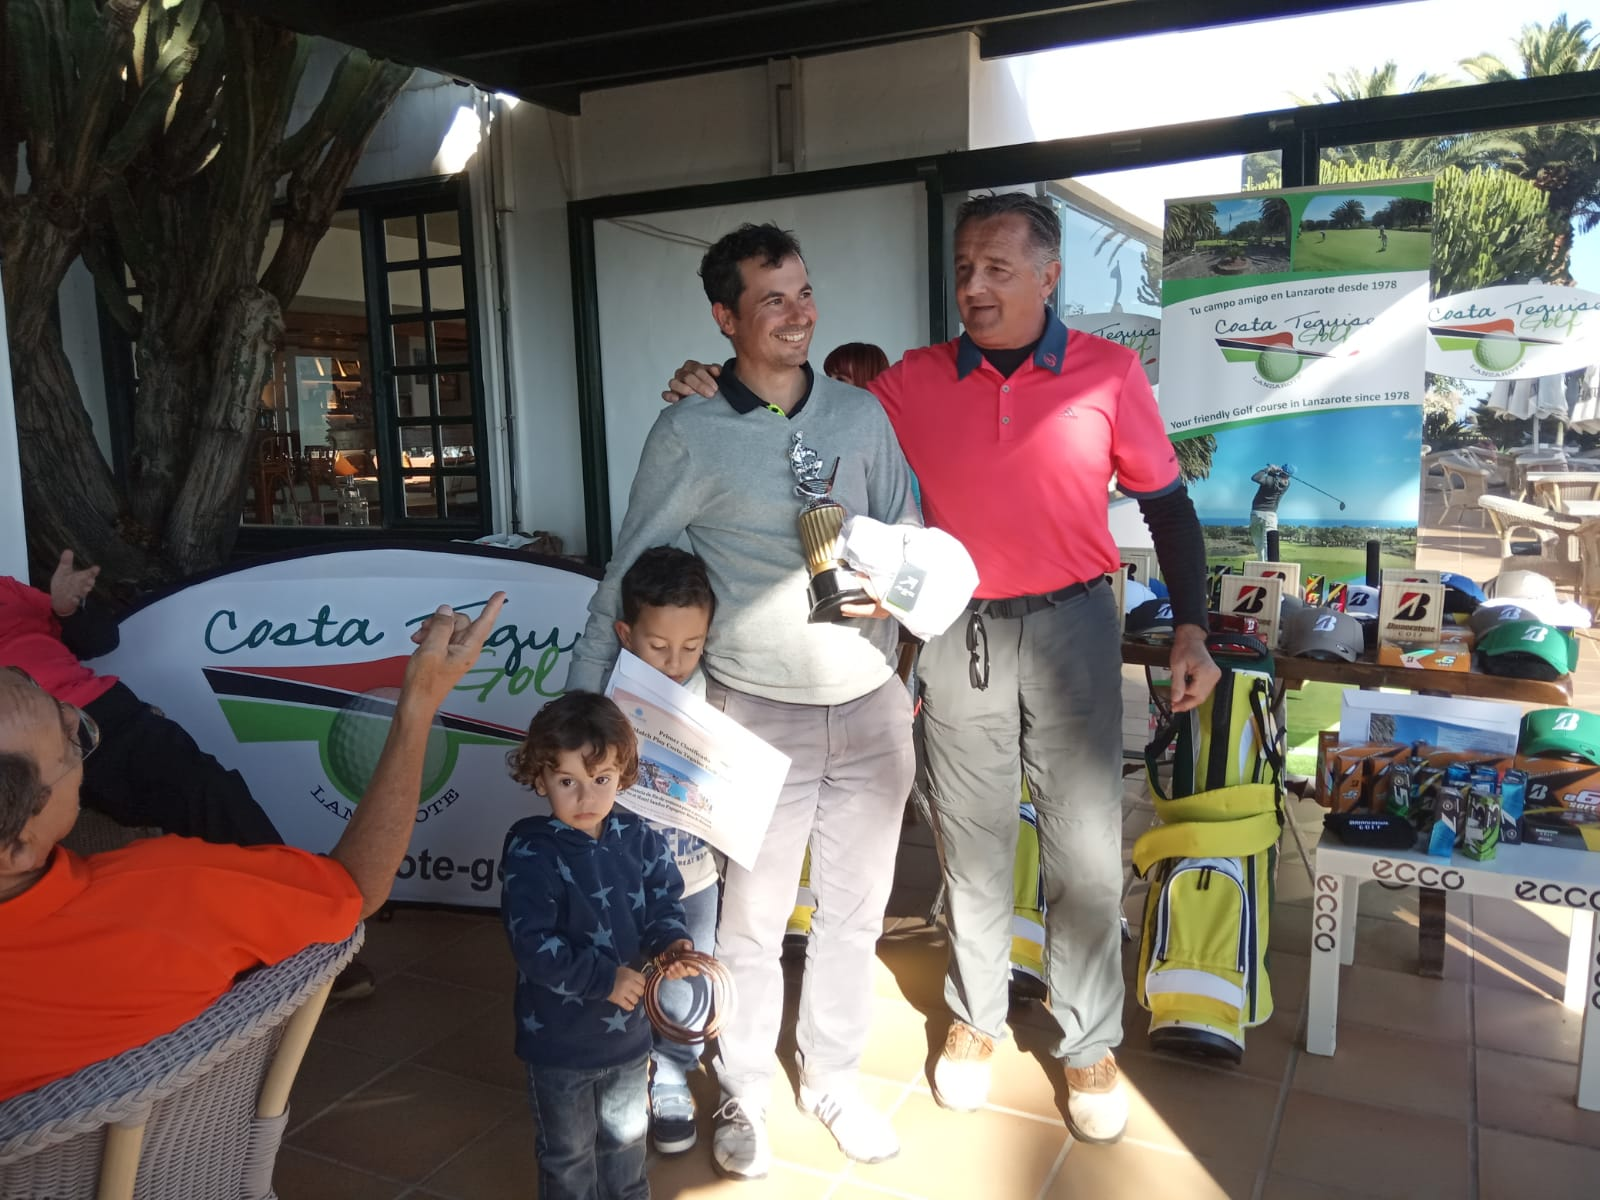 Congratulations to the winners of the Costa Teguise Golf Match Play 2018